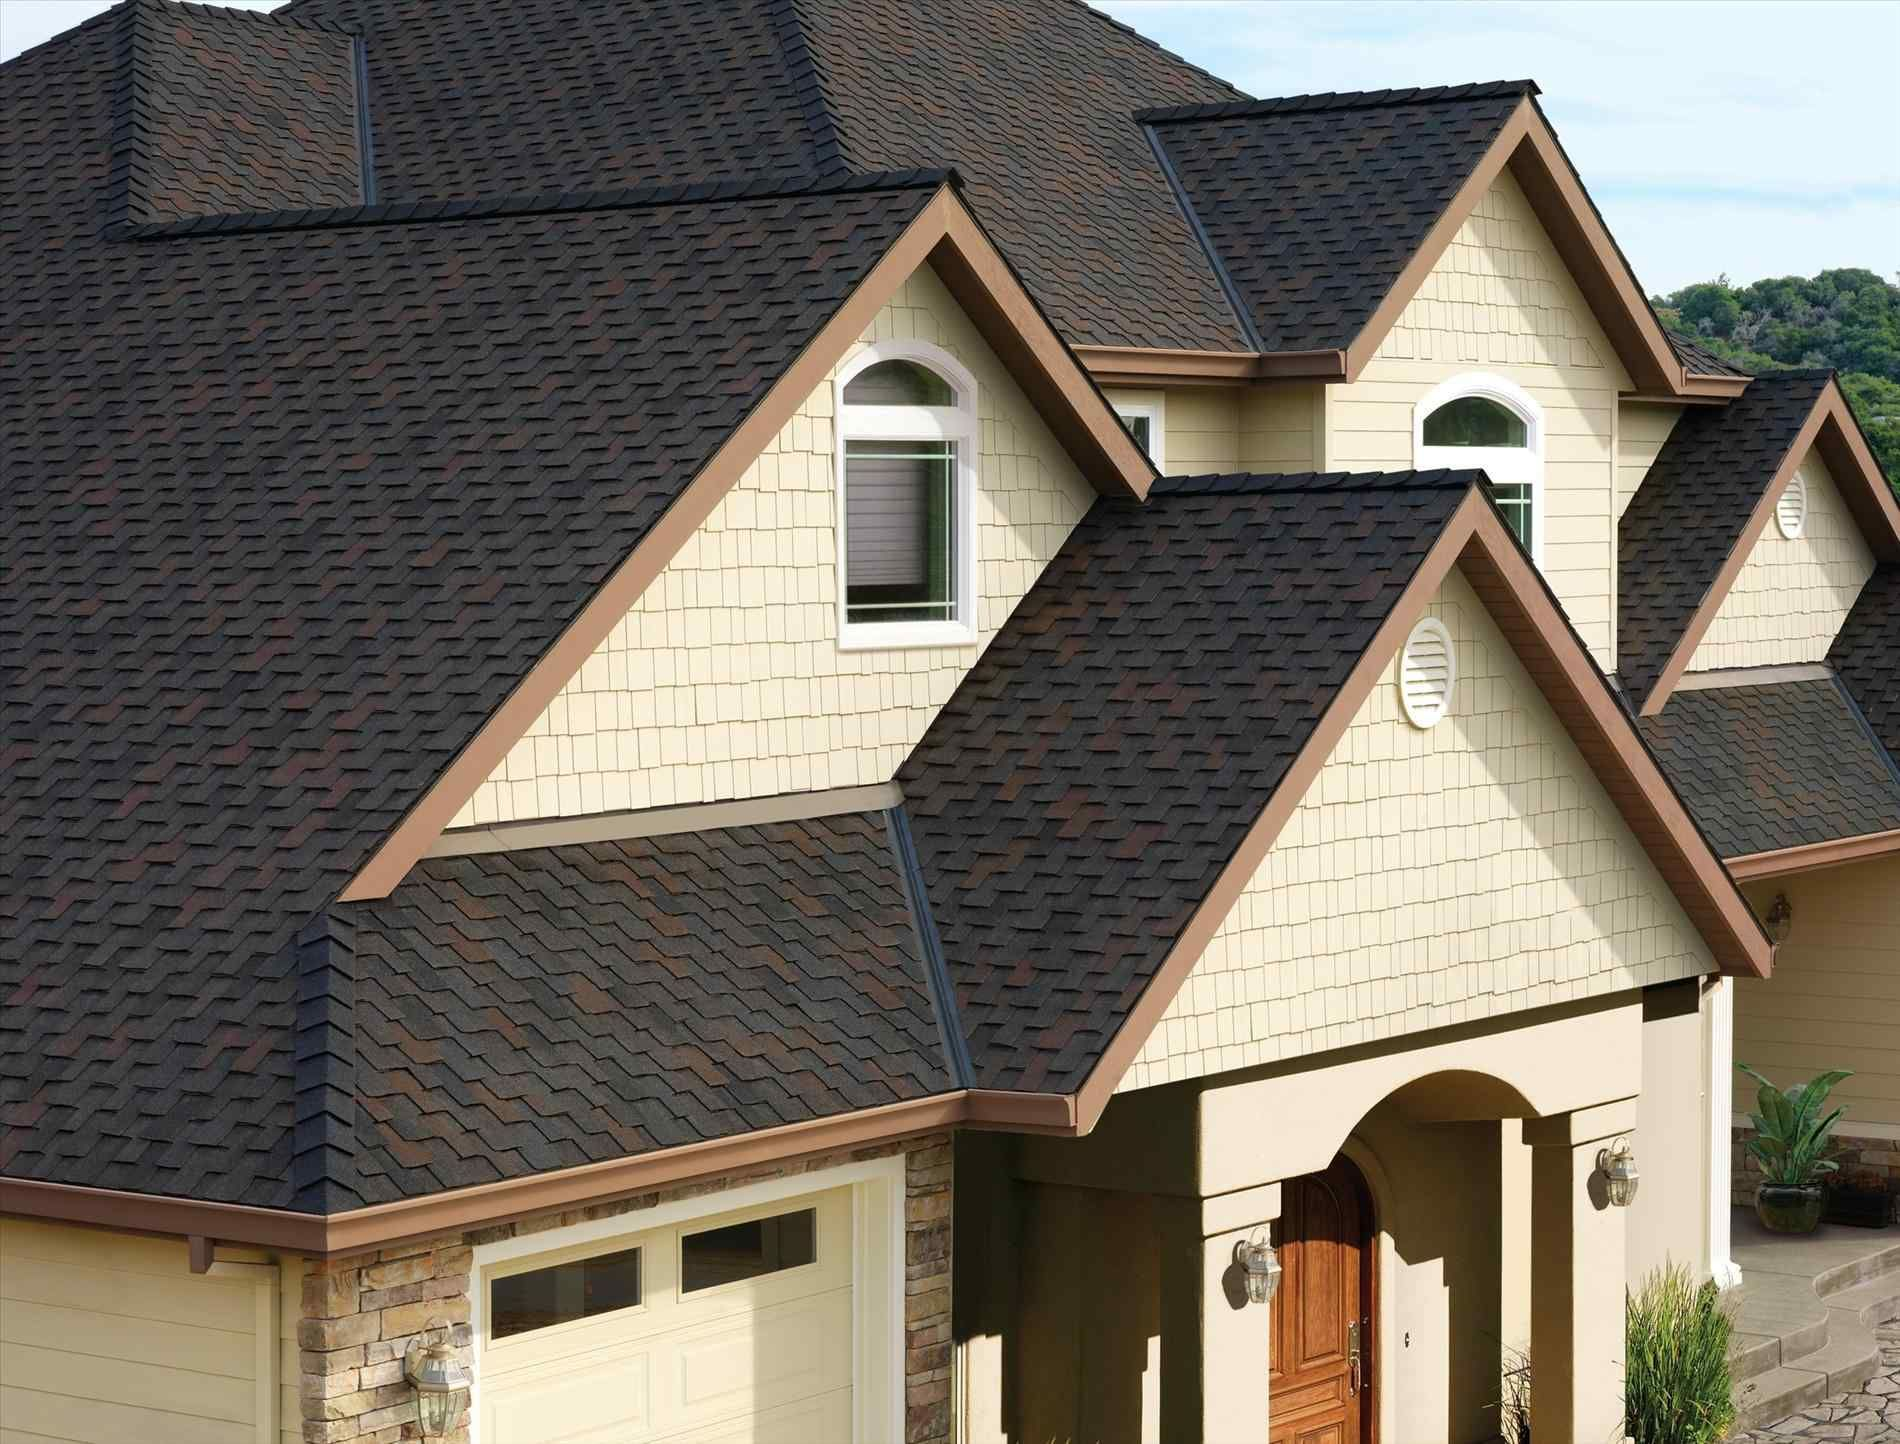 Roof Shingles Home Depot Residential Roofing Commercial